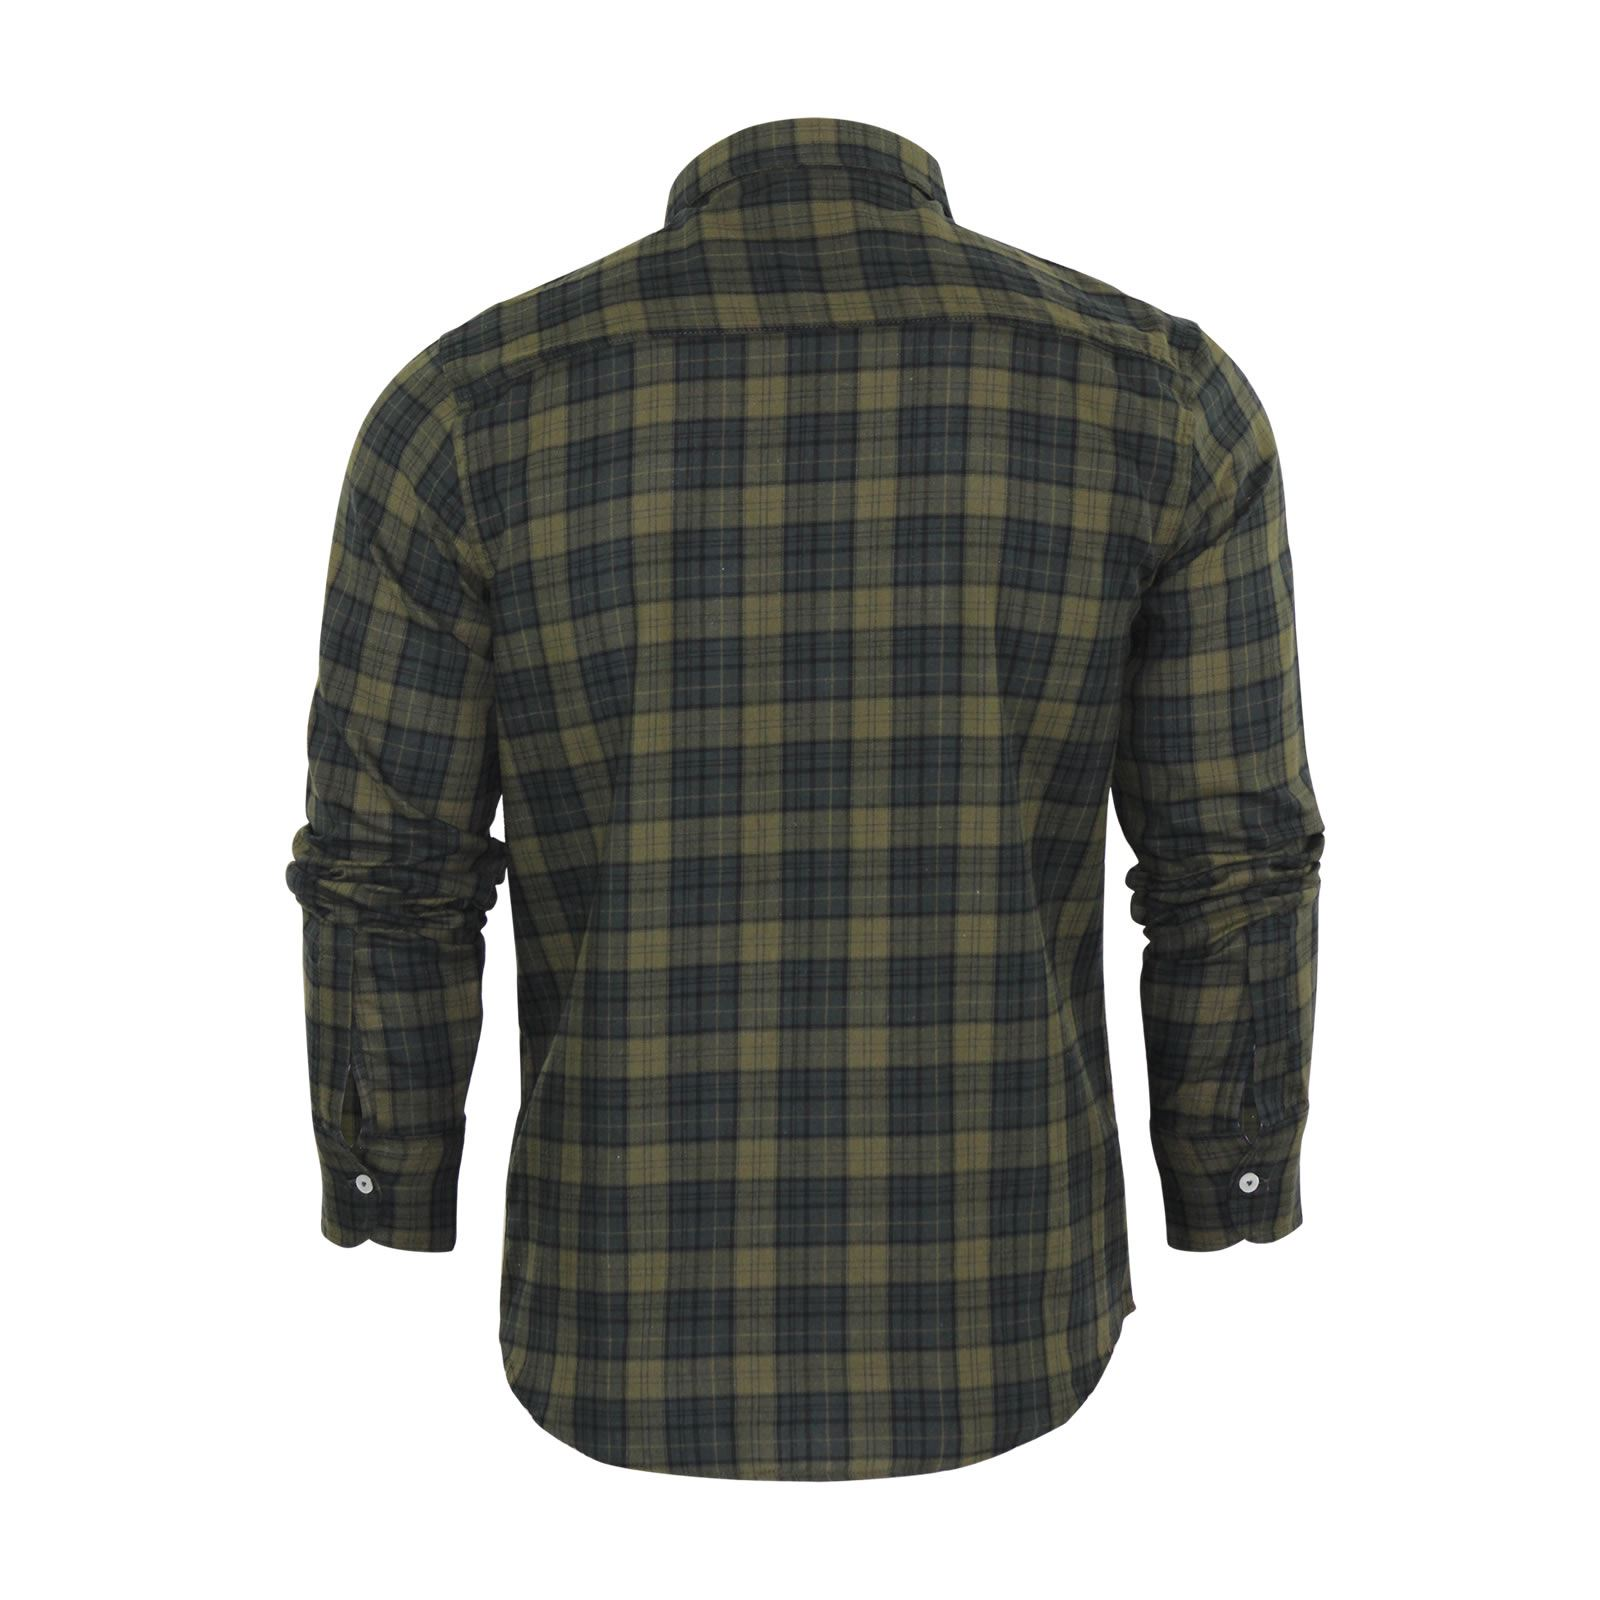 Mens-Check-Shirt-Brave-Soul-Flannel-Brushed-Cotton-Long-Sleeve-Casual-Top thumbnail 66